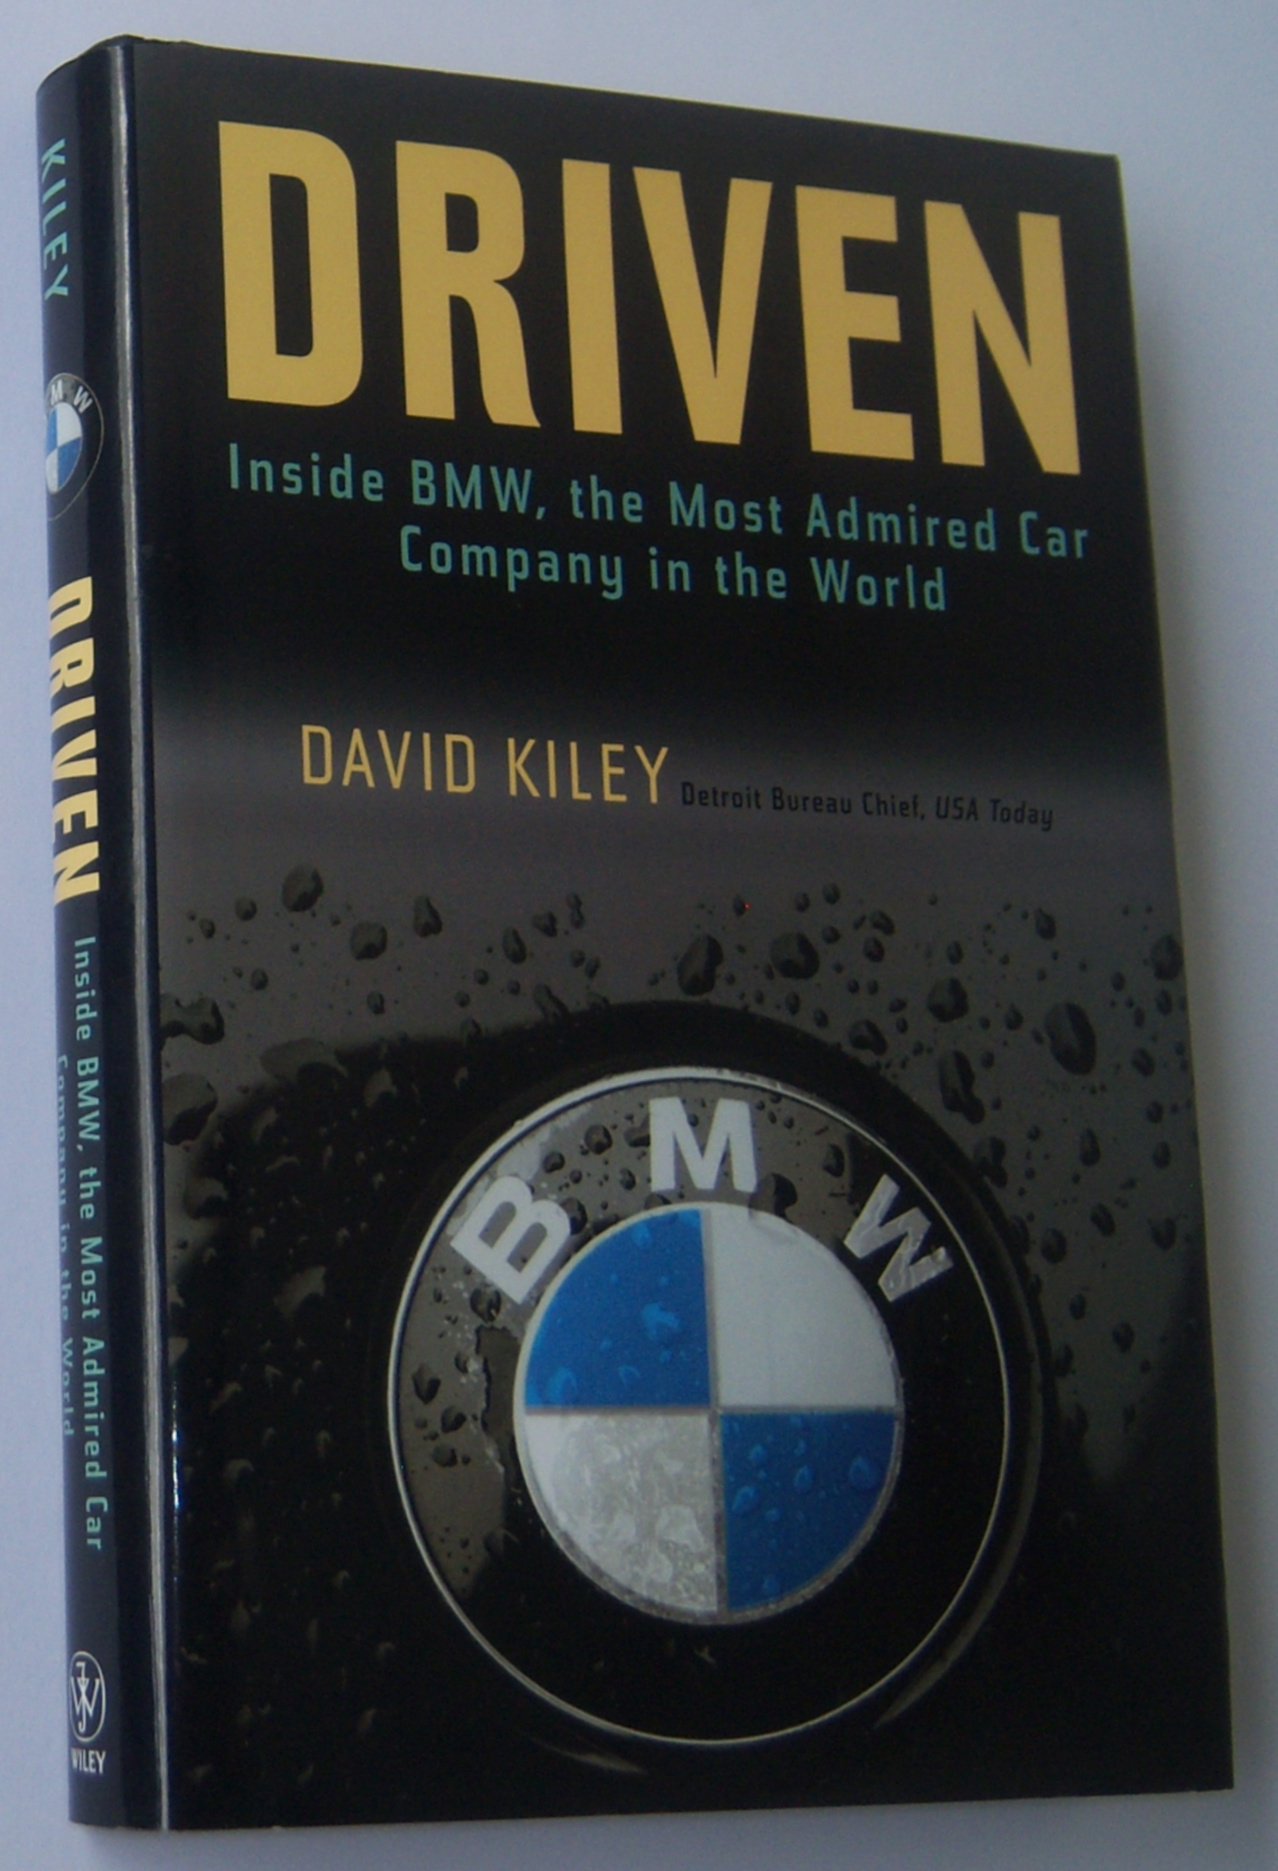 Image for DRIVEN: Inside BMW, the Most Admired Car Company in the World